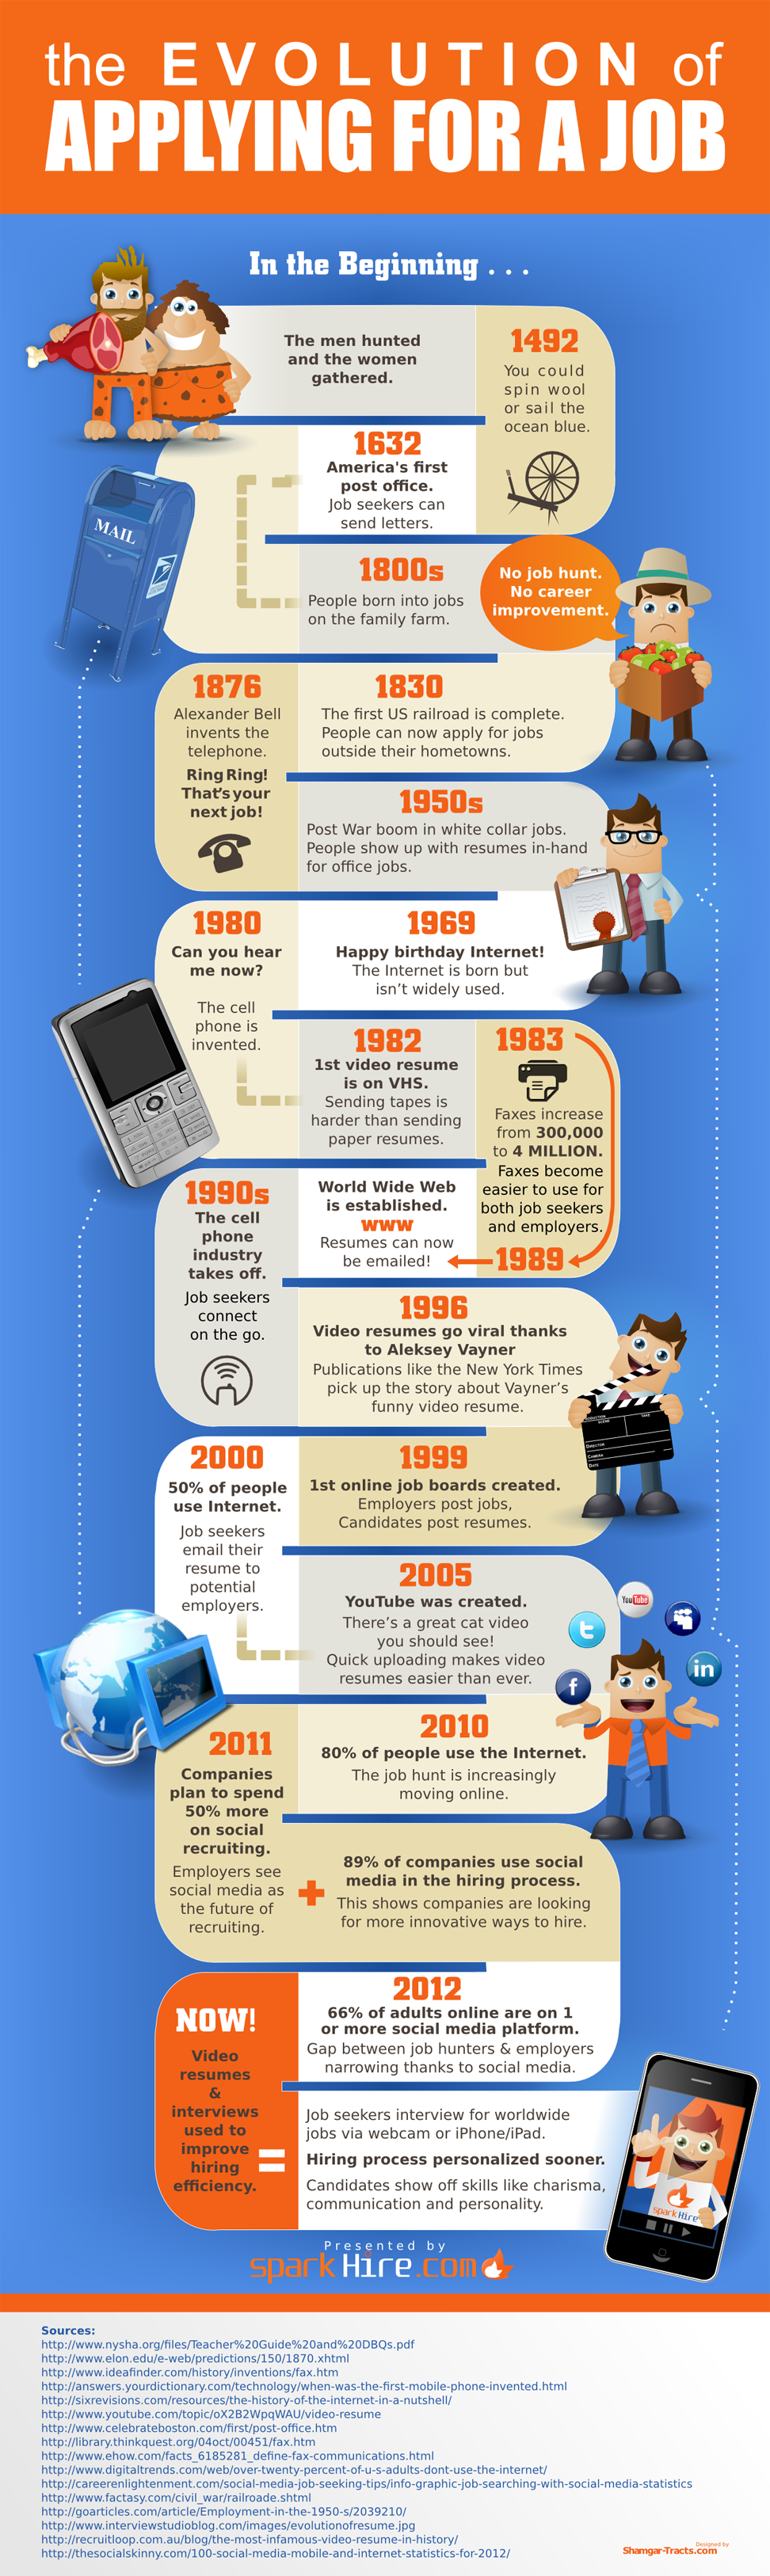 Evolution of Applying for a Job Infographic